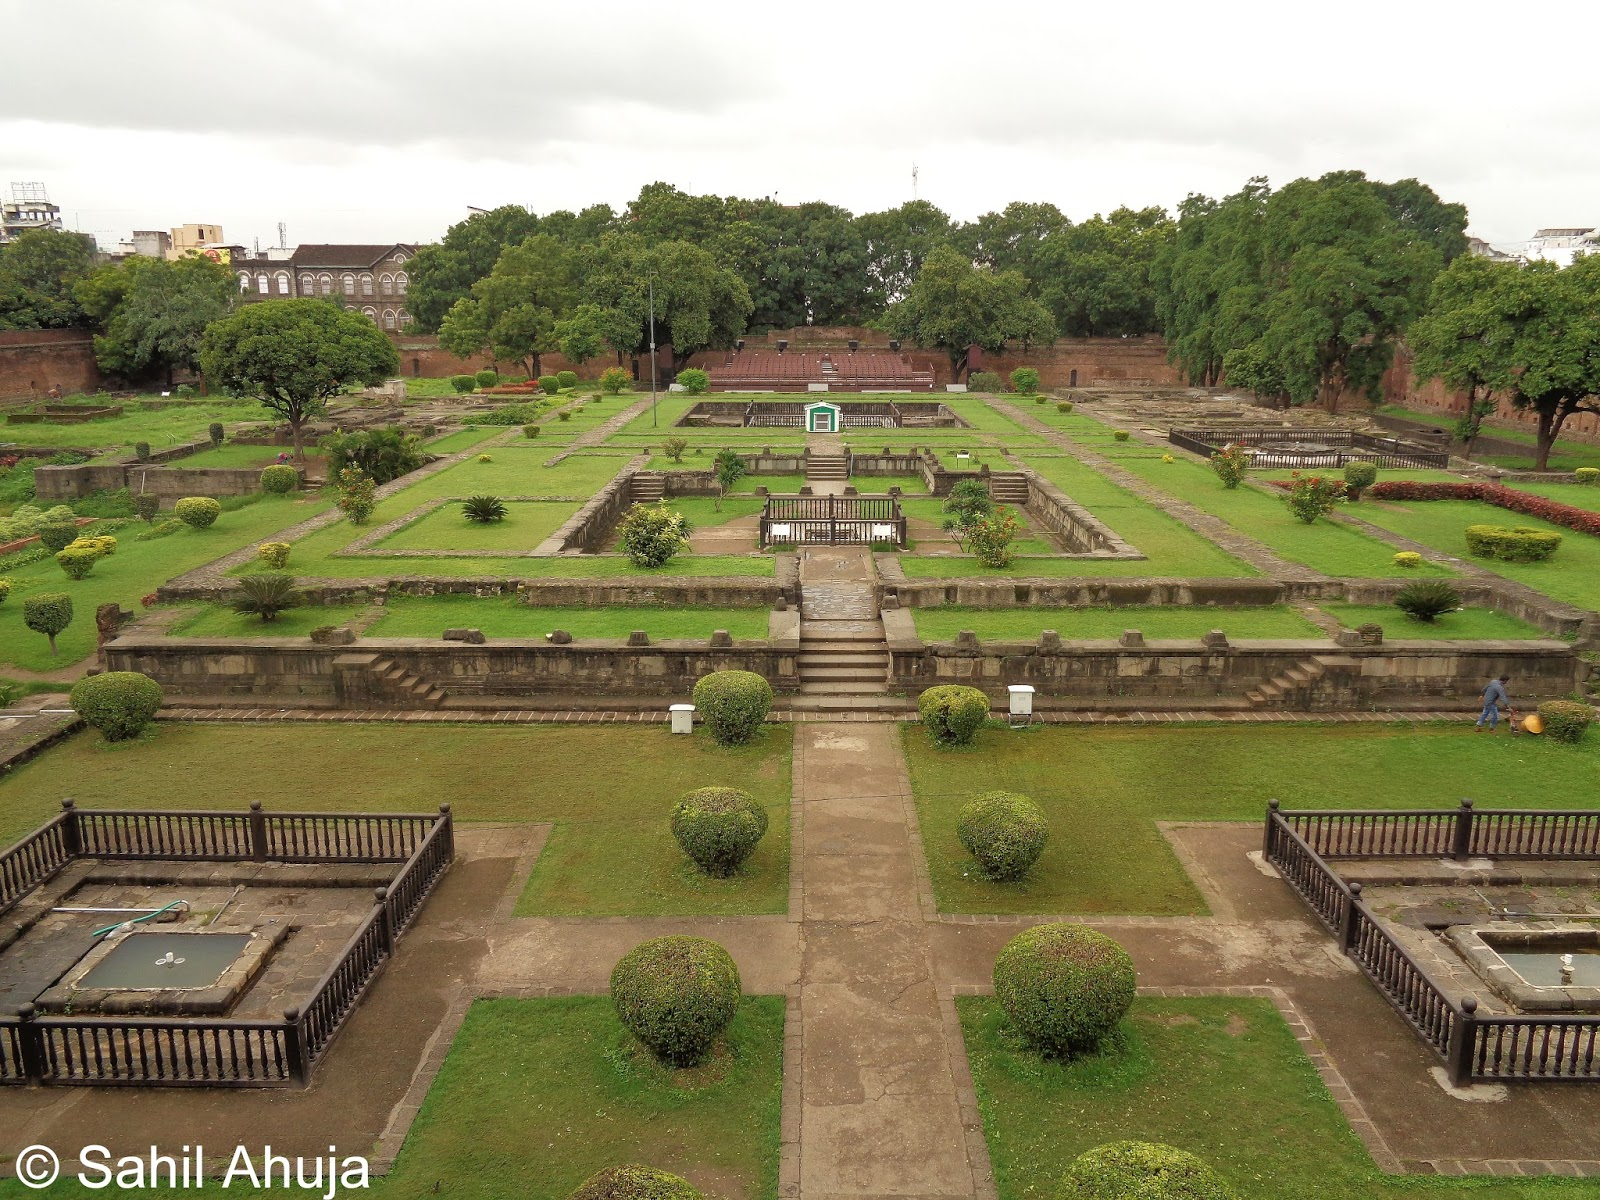 vishrambaug wada The history of vishrambaug wada vishrambaug wada was built in the very beginning of the 19th century for the peshwa leaders of the maratha empire the magnificent palace was built over six years and served as a luxurious residence to the last of the peshwas – bajirao peshwa ii.